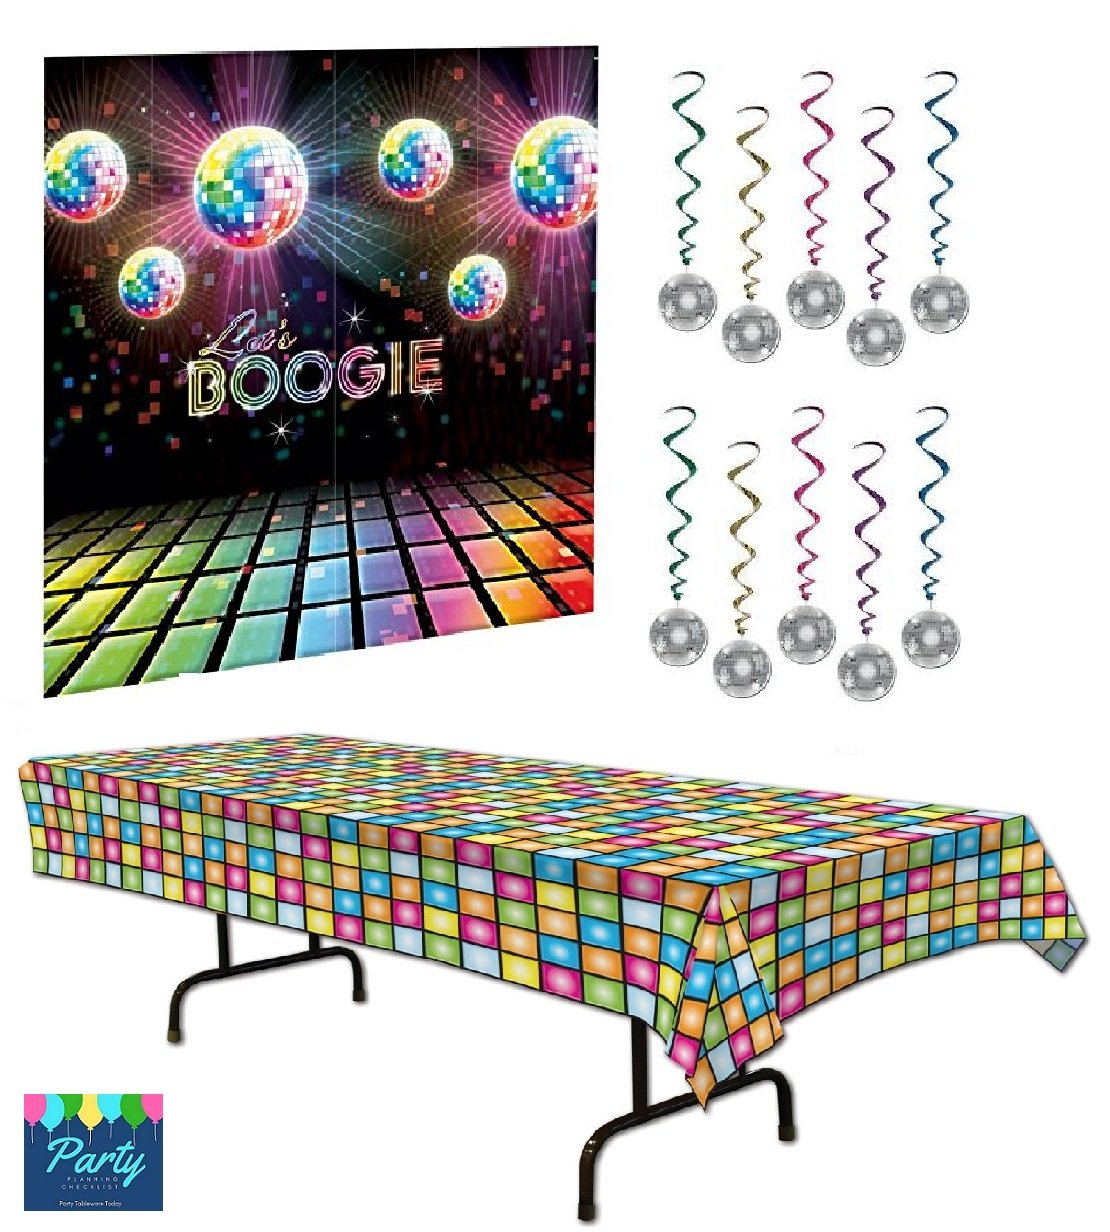 Disco Ball Party Decorations: 70's Party Decorations: Amazon.com